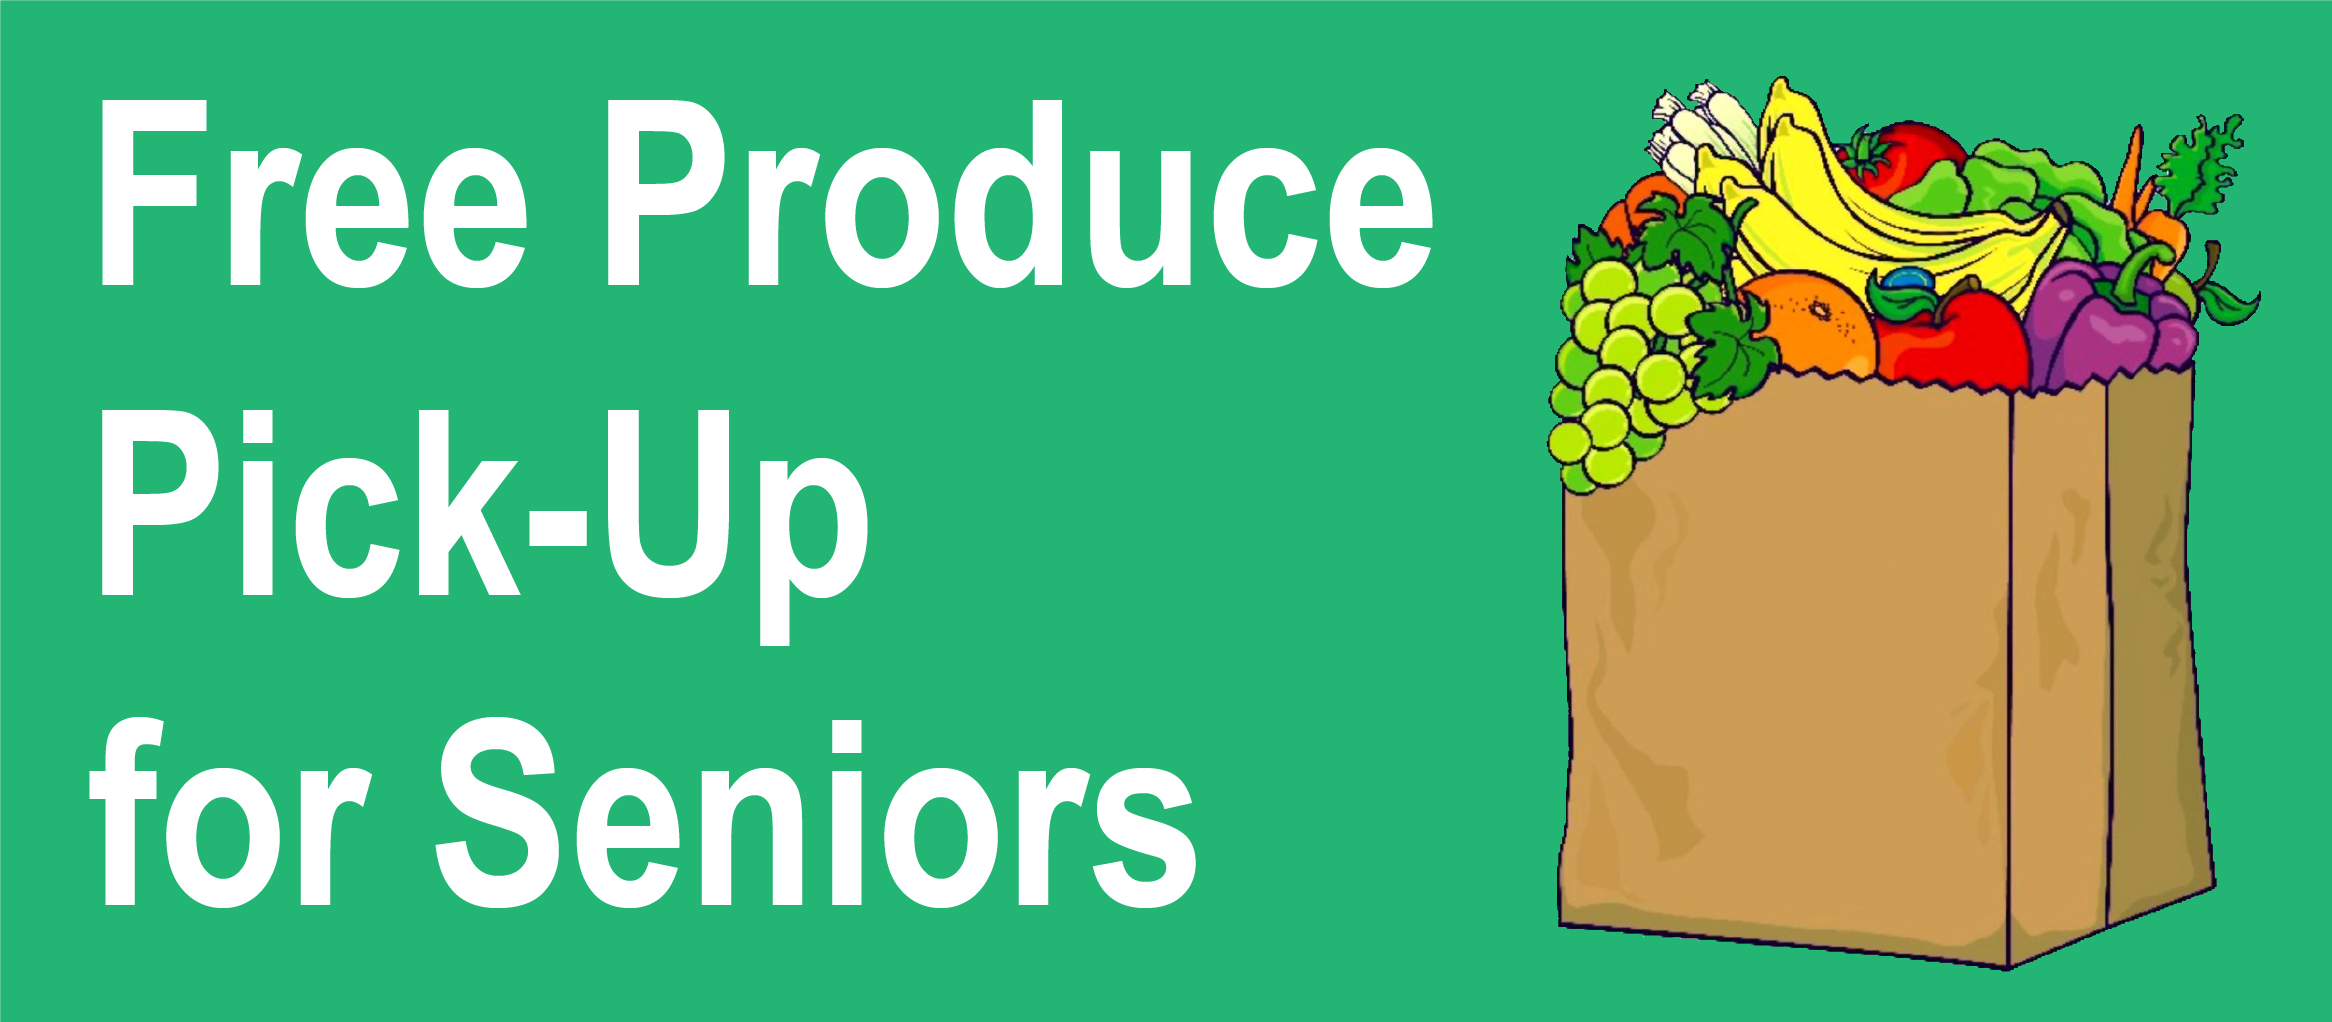 Clip art image of produce in grocery bag